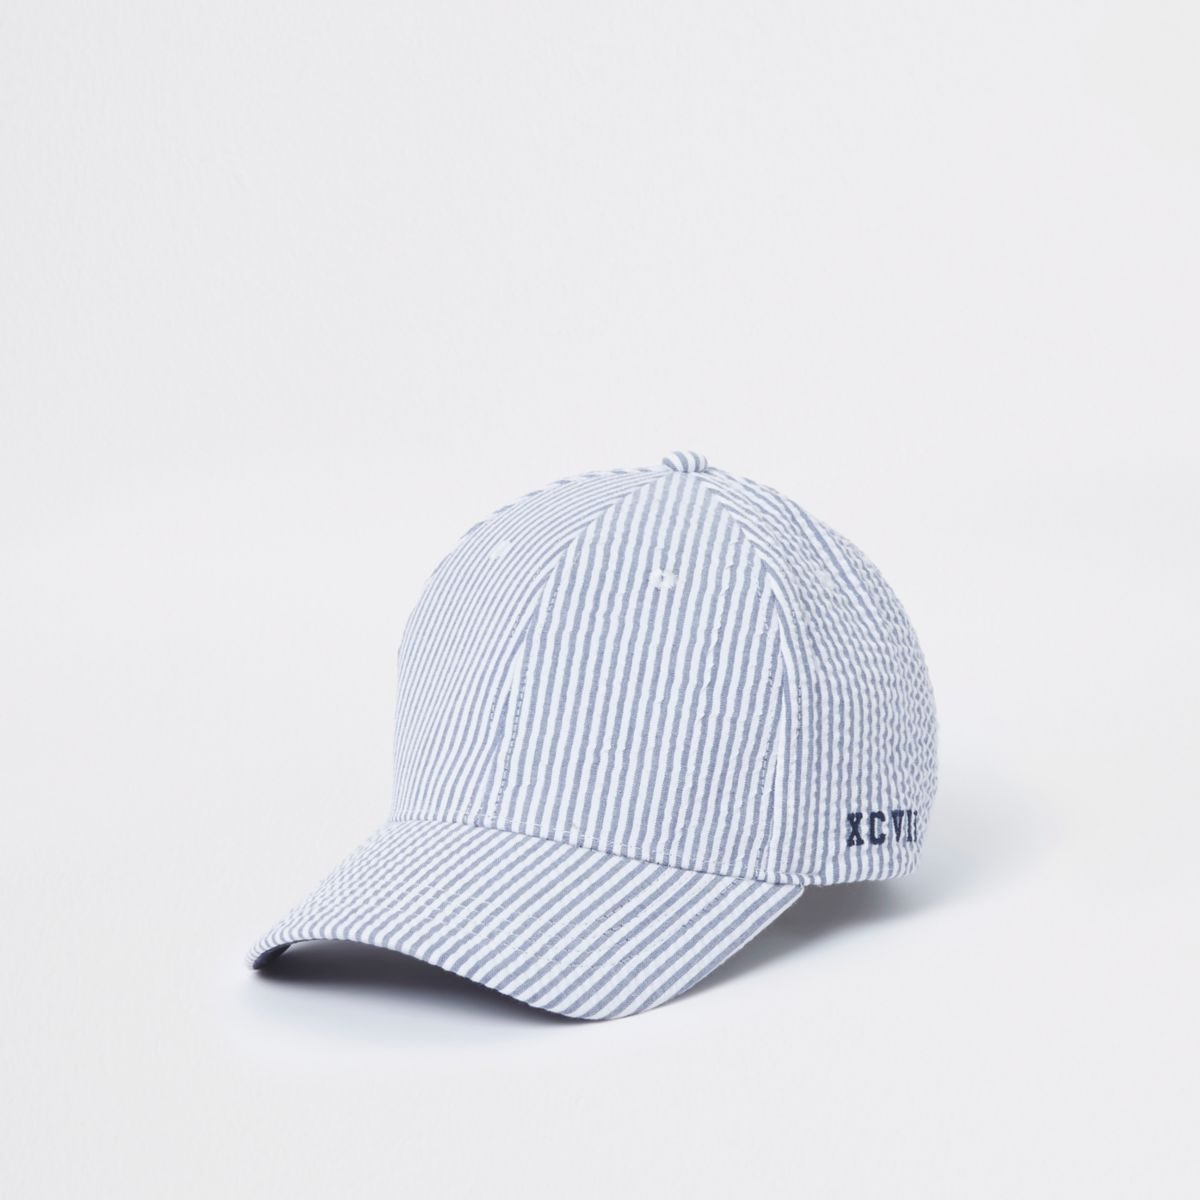 Blue striped baseball cap